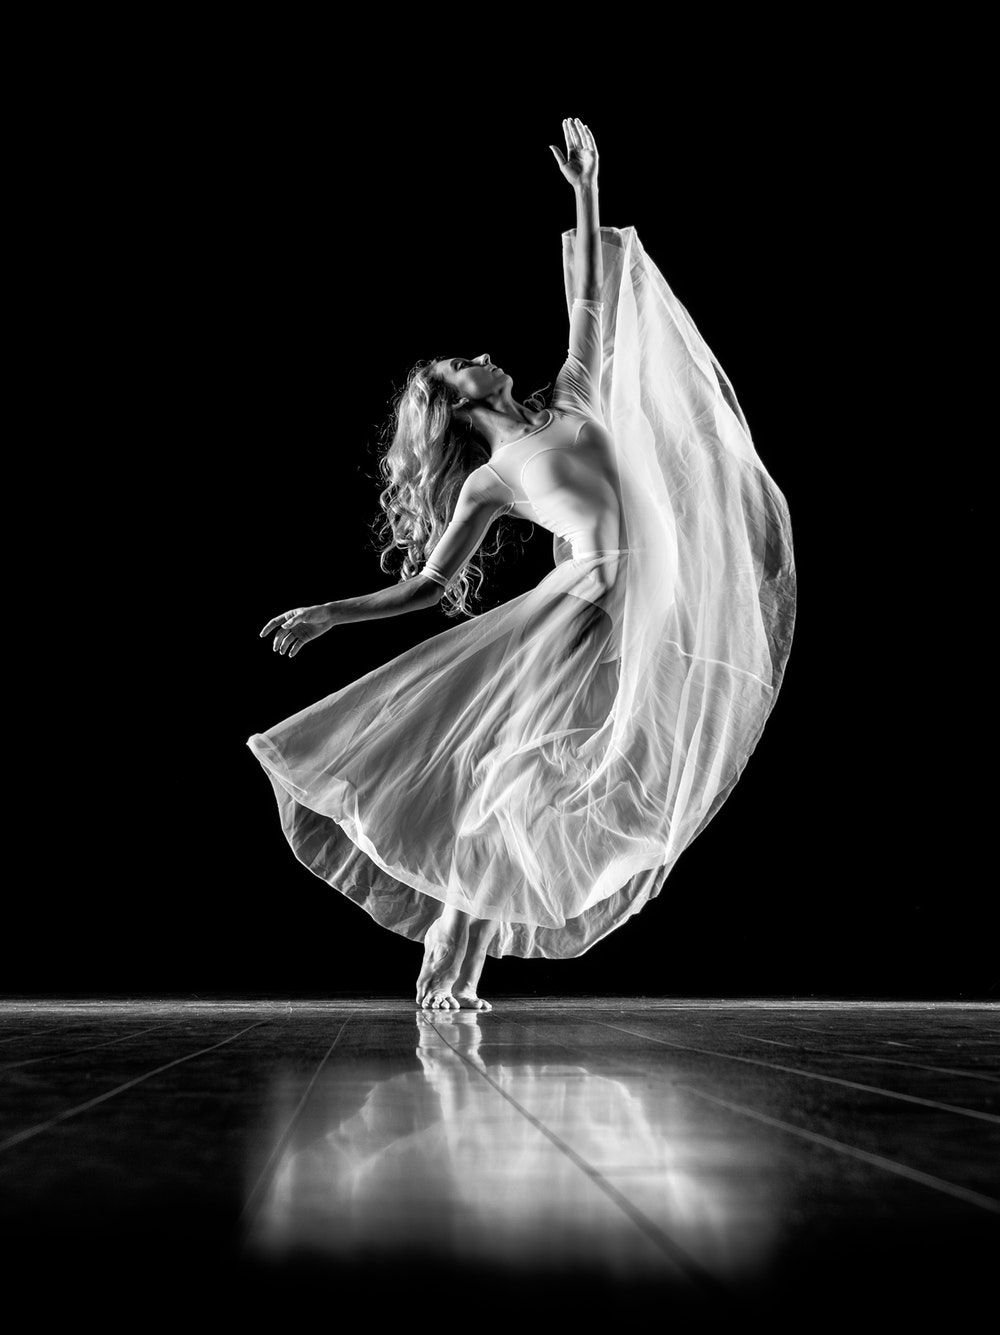 Dance Photography Wallpapers   Top Dance Photography 1000x1335